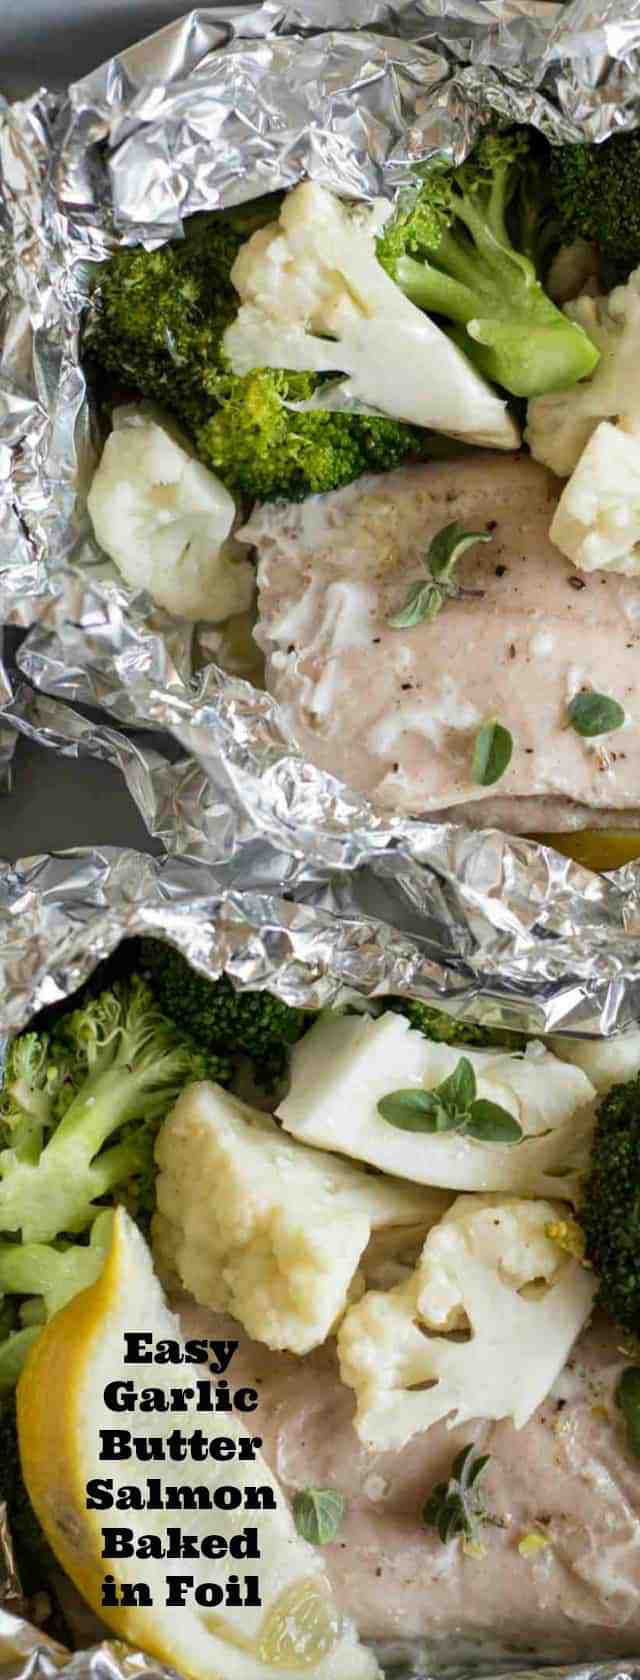 Quick and easy garlic butter baked salmon in foil with broccoli and cauliflower makes an easy dinner recipe that is done in about 20 minutes.